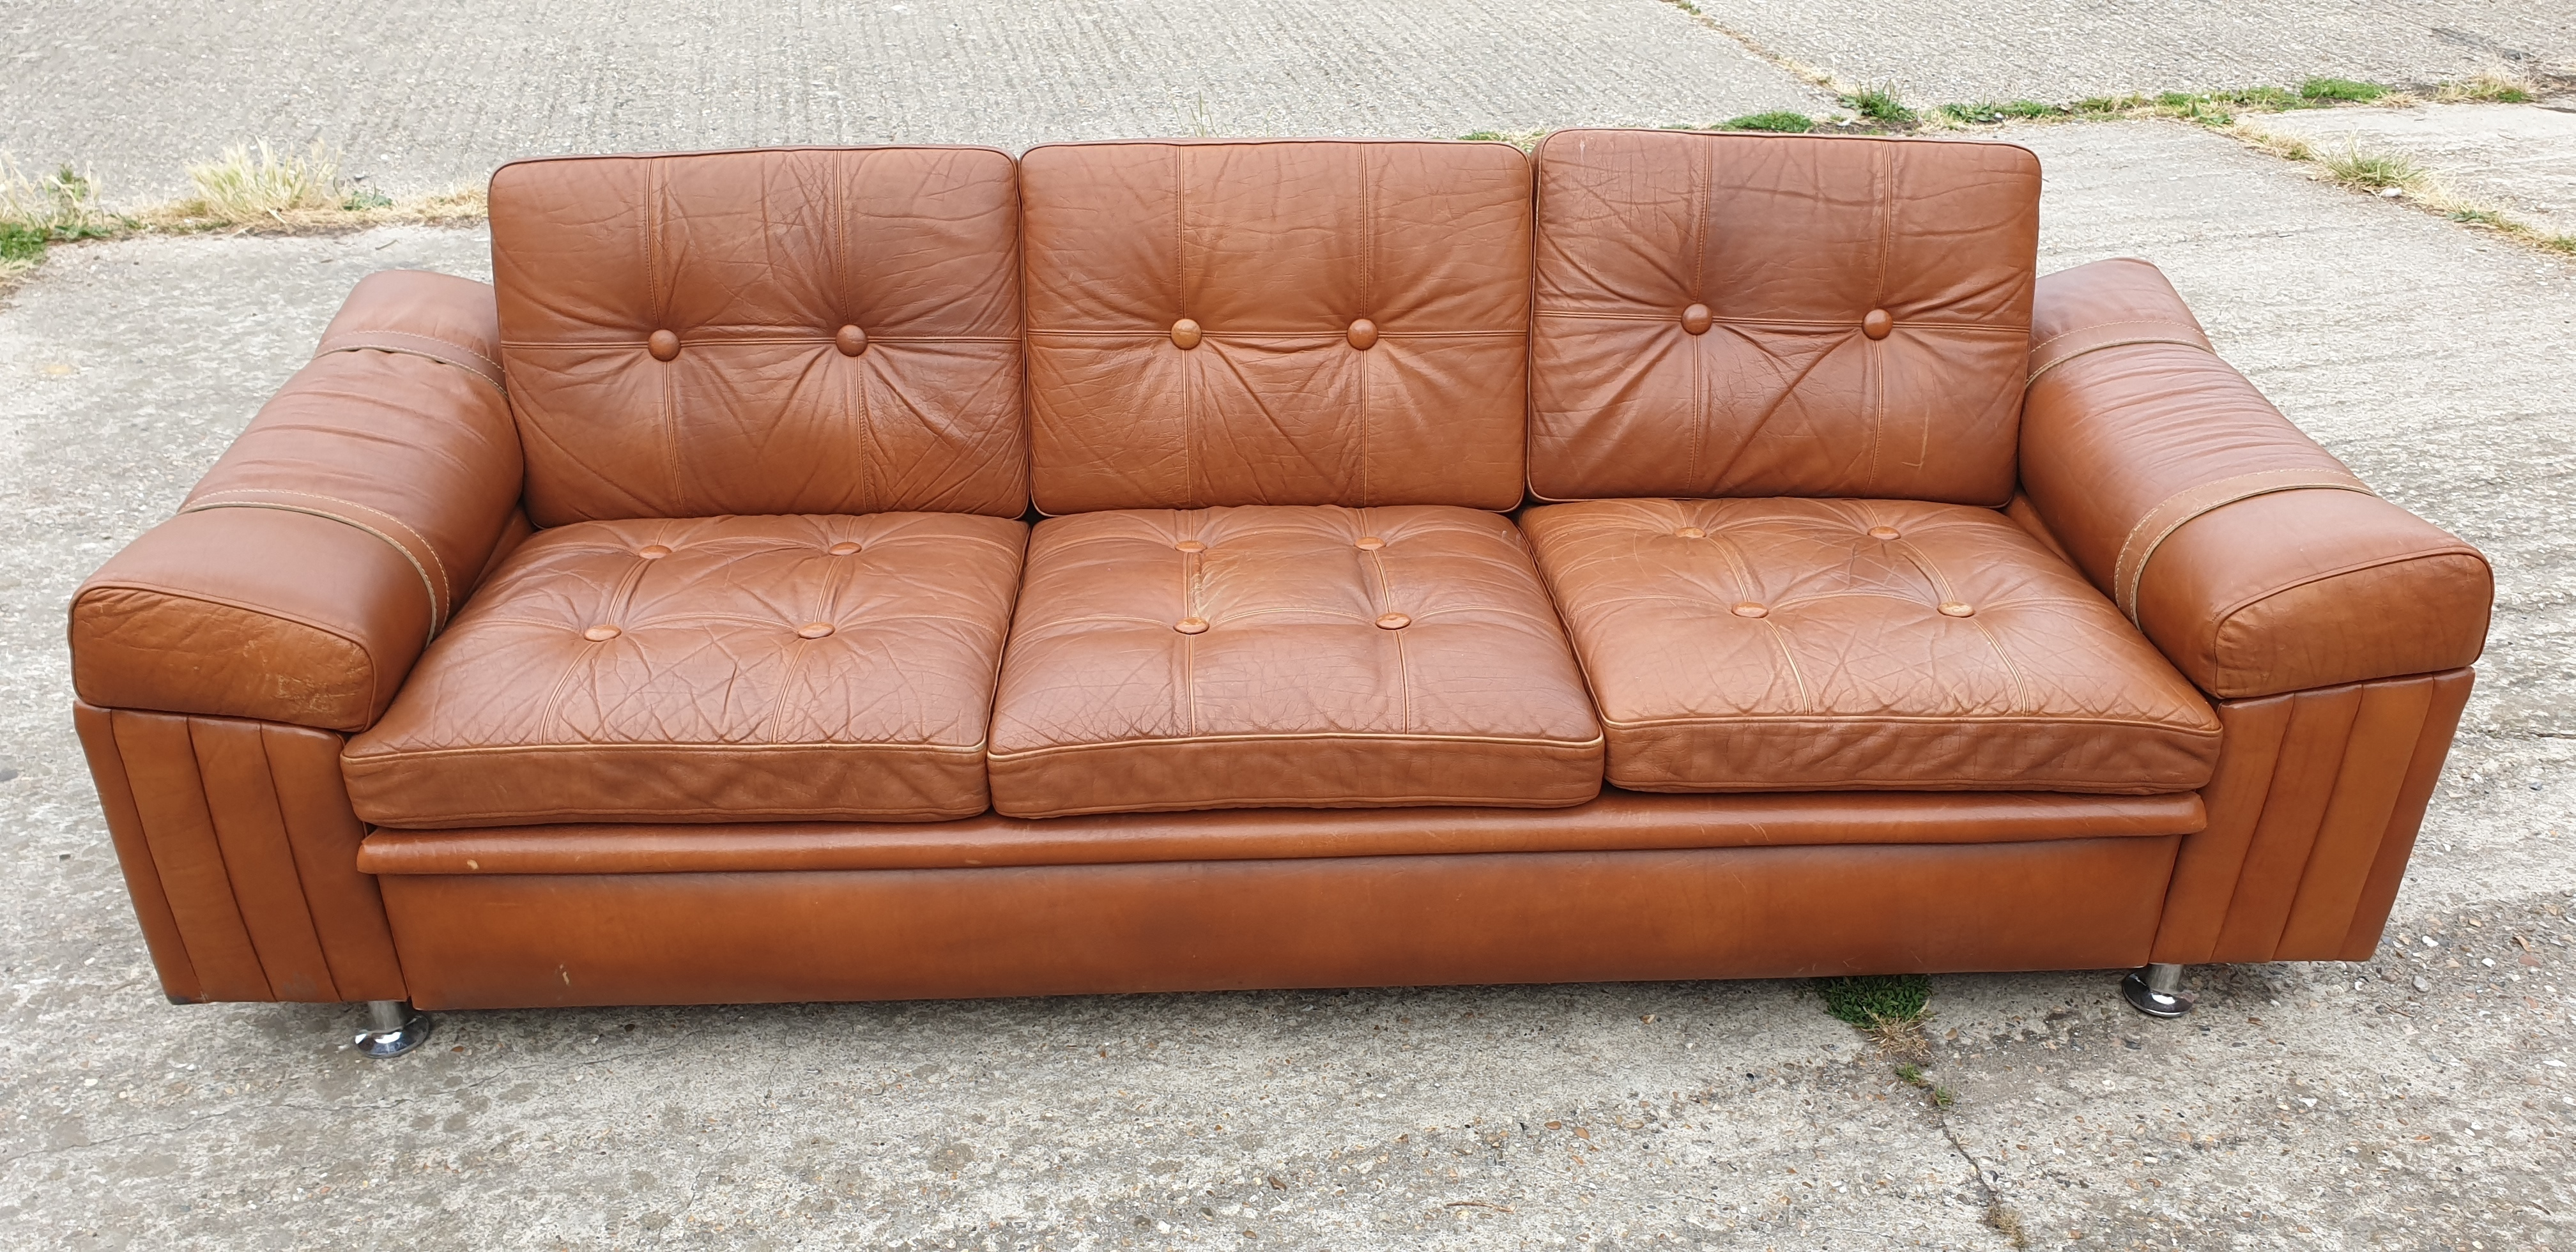 Danish 3 Seater Leather Sofa By Skipper